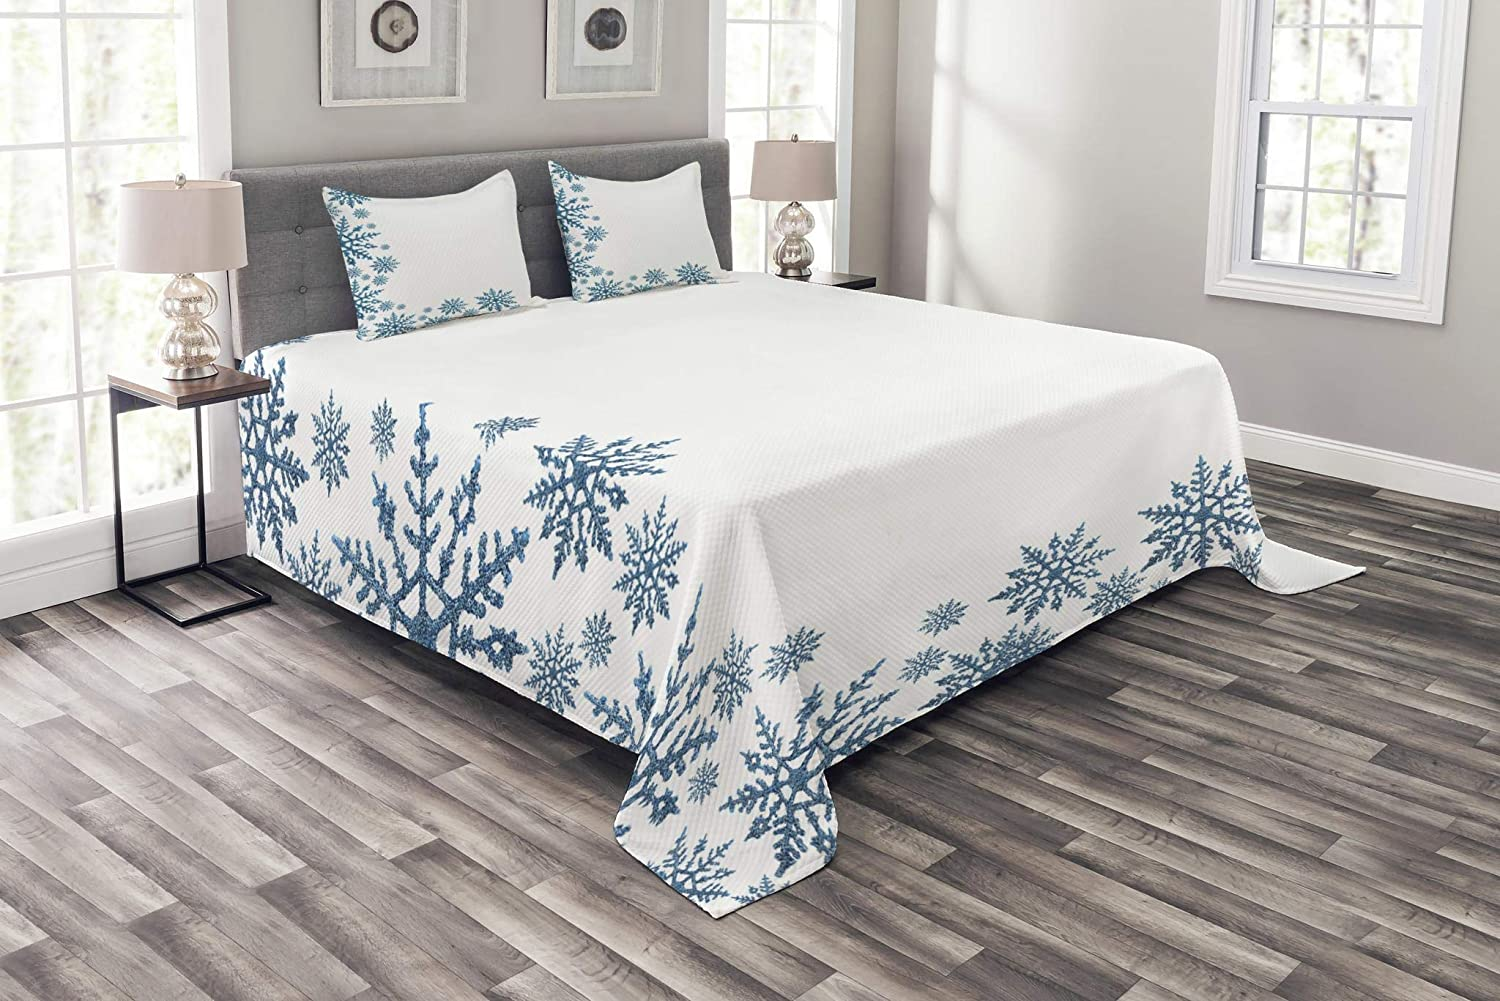 Lunarable Snowflake Bedspread Set Queen Size, Snow Inspired Abstract Frozen Season Frame Pattern Christmas Festive Celebration, Decorative Quilted 3 Piece Coverlet Set with 2 Pillow Shams, Blue White bed_50372_queen